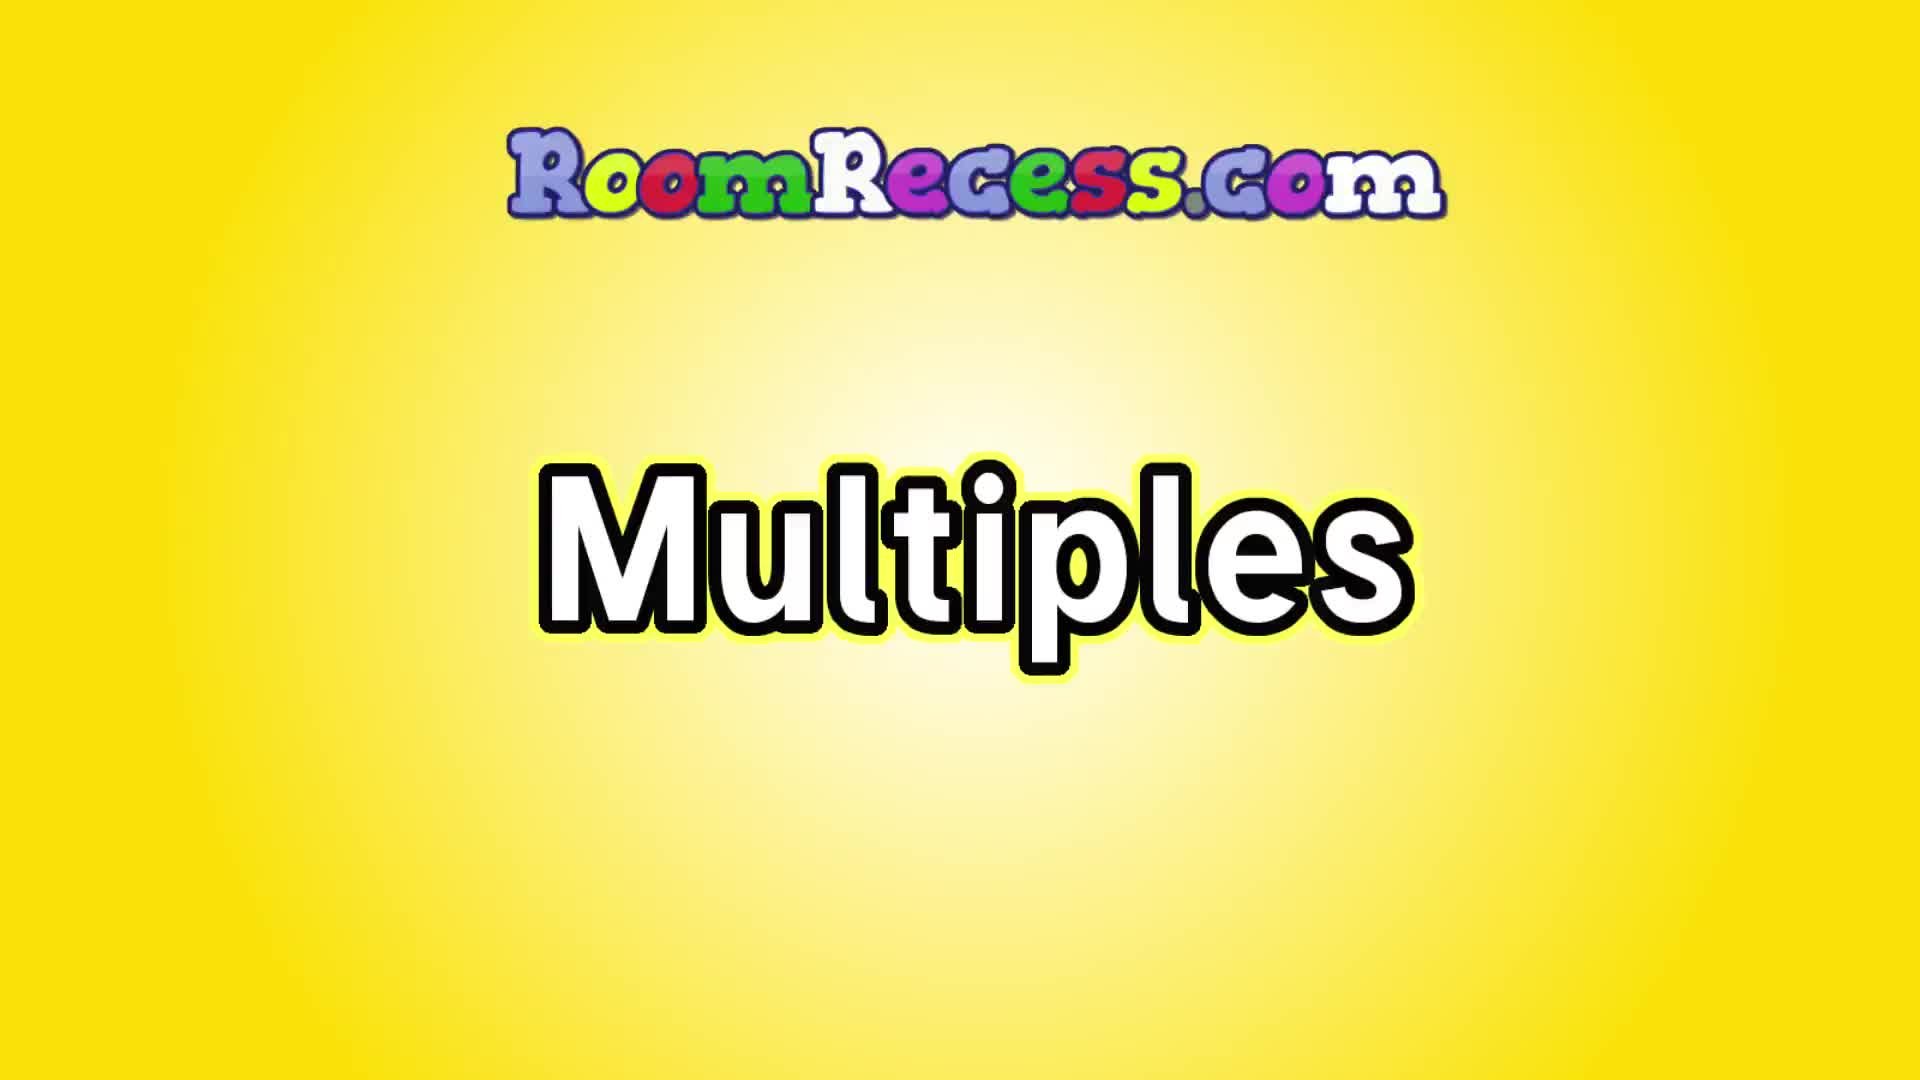 Multiples by RoomRecess.com